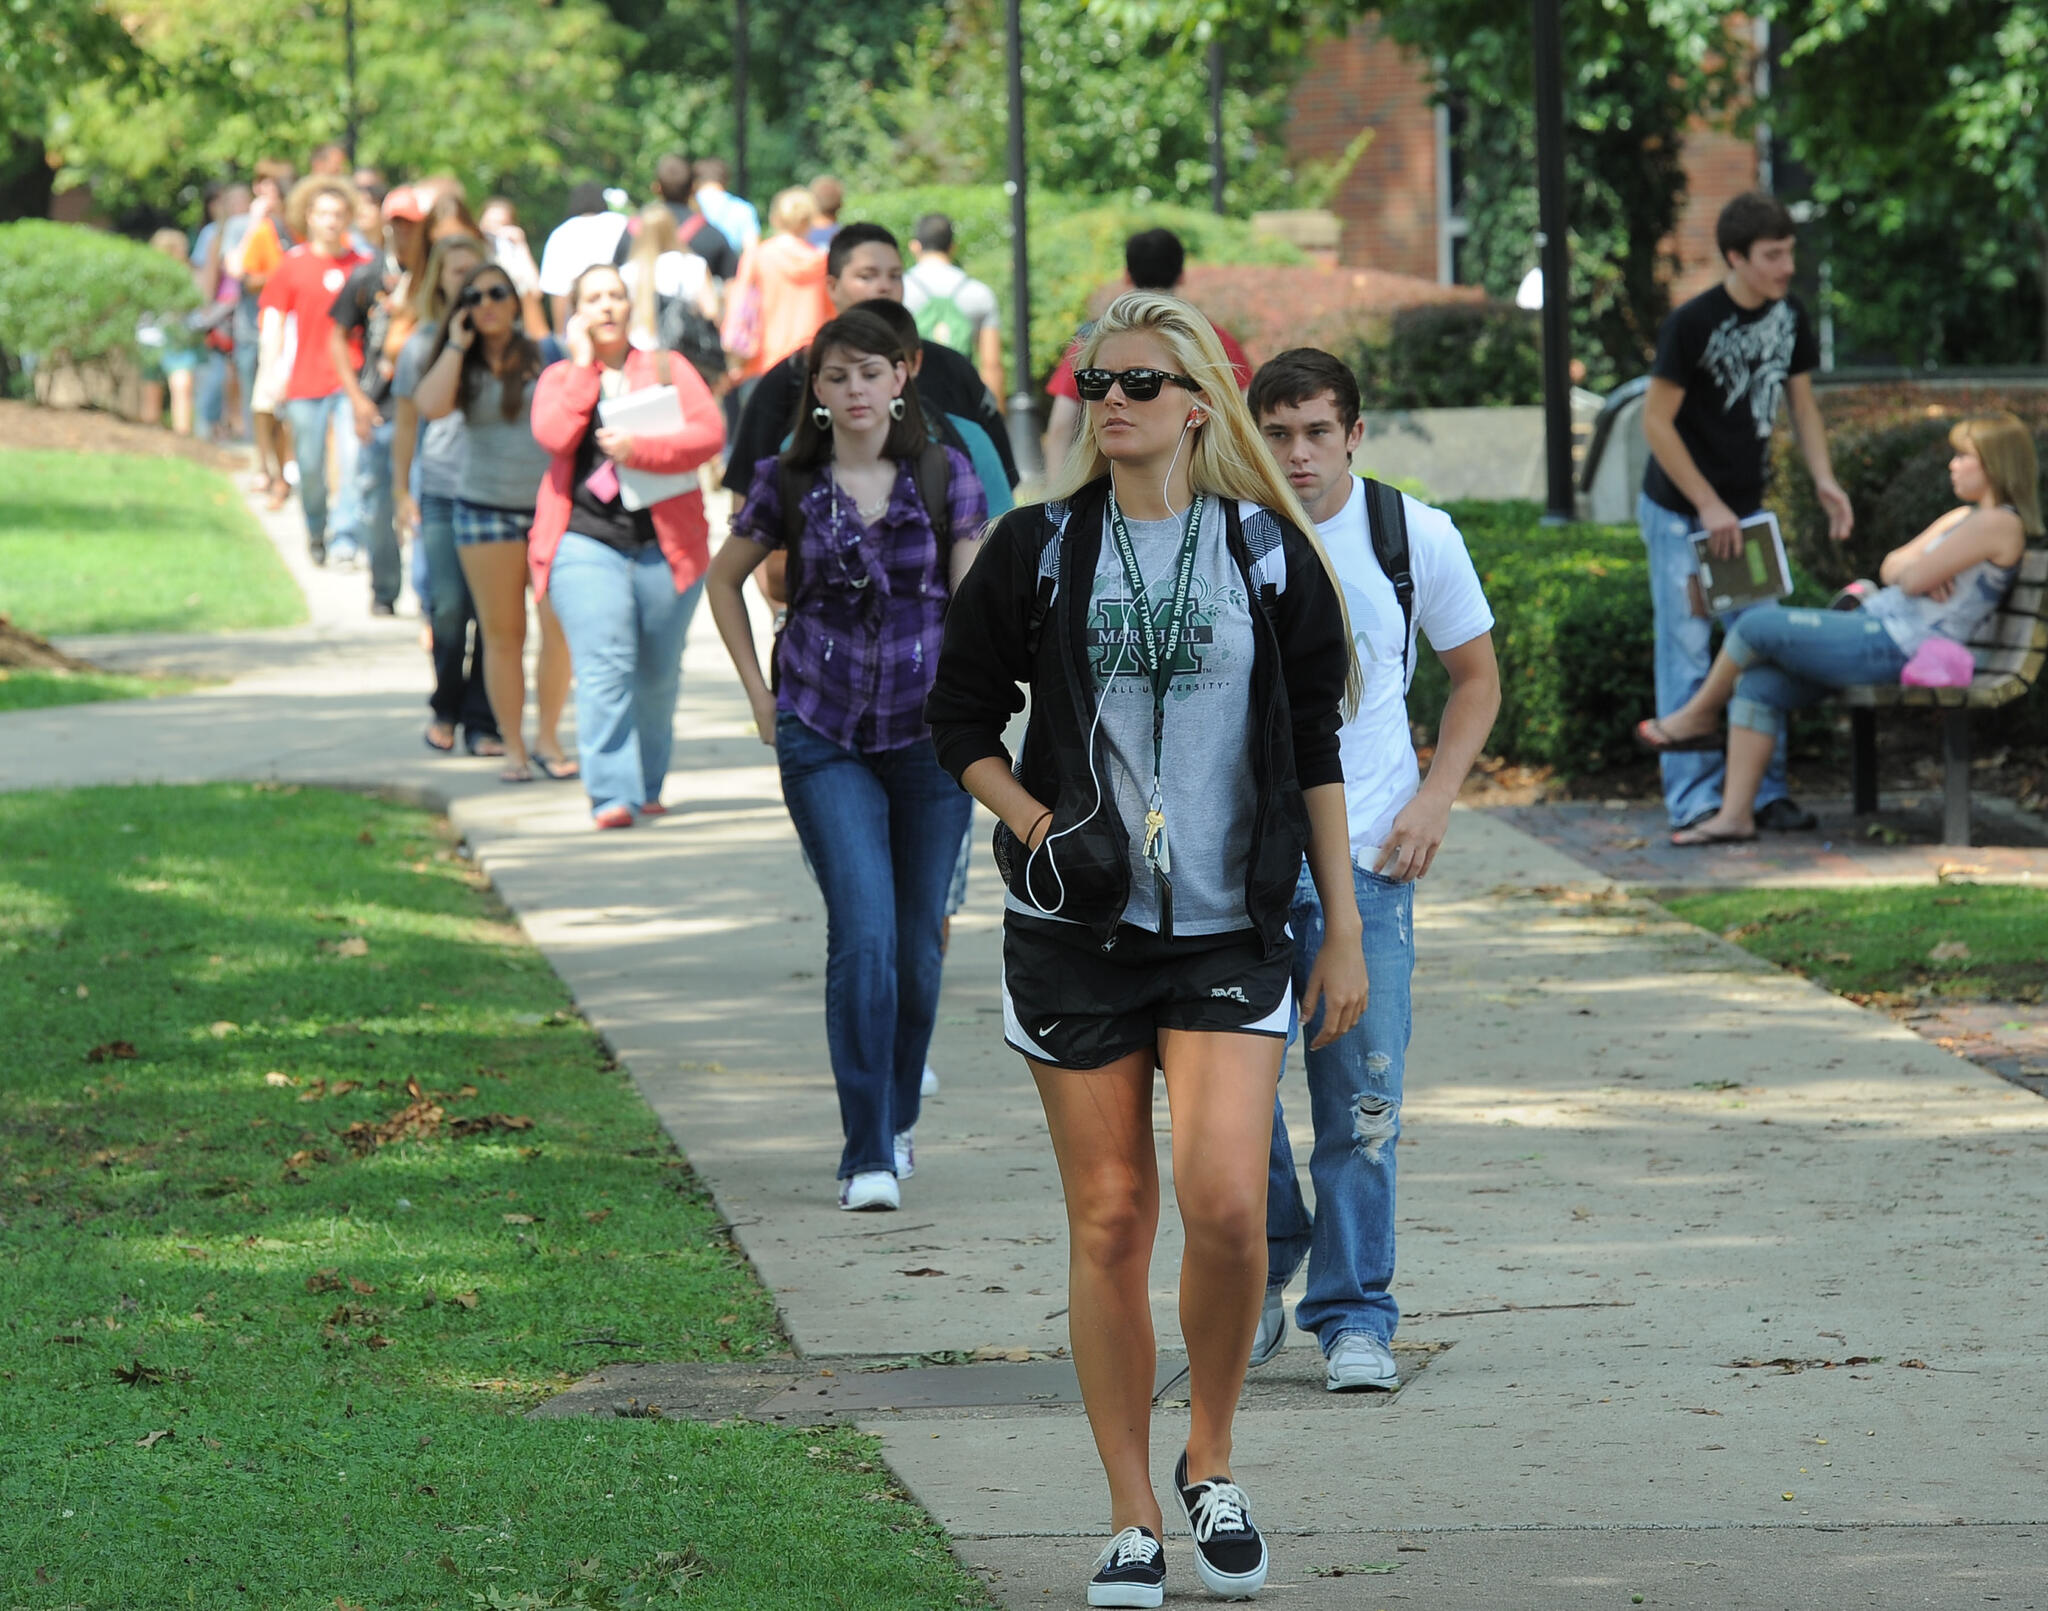 Marshall students walking on campus